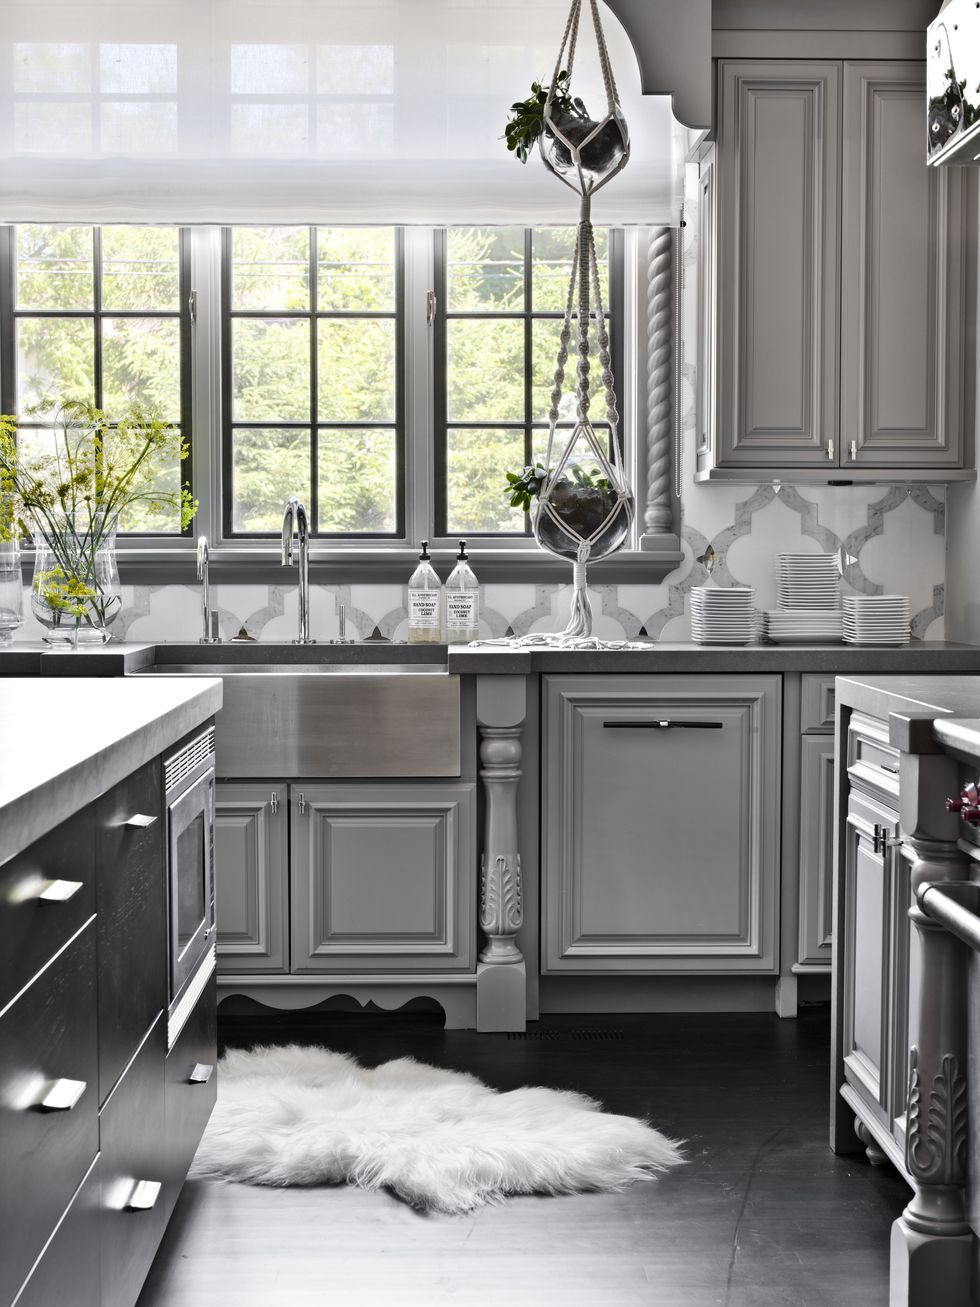 Grey Kitchen Cabinets What Colour Walls 14 Best Grey Kitchen Cabinets Design Ideas With Grey Cabinets